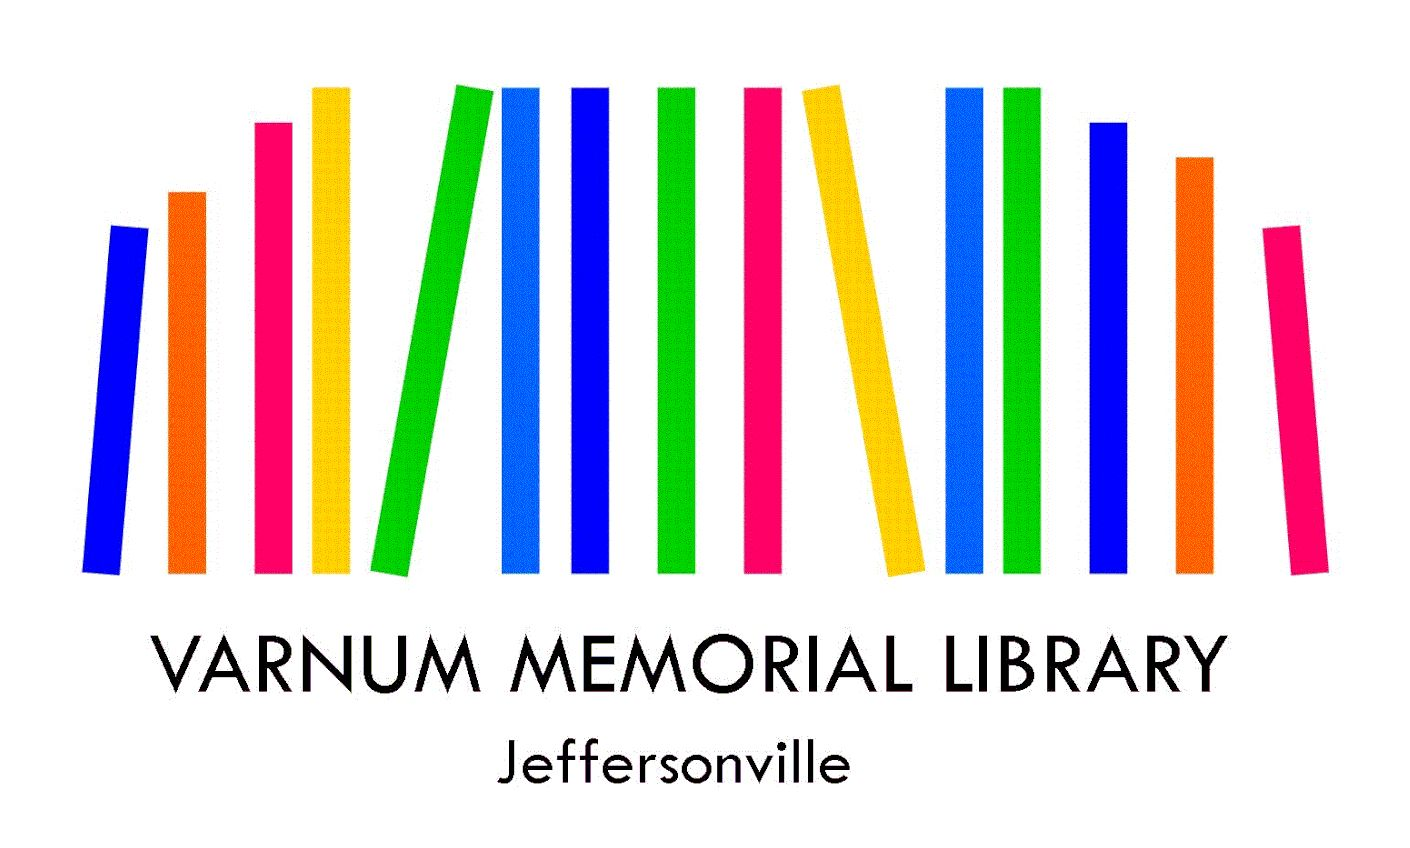 Varnum Memorial Library